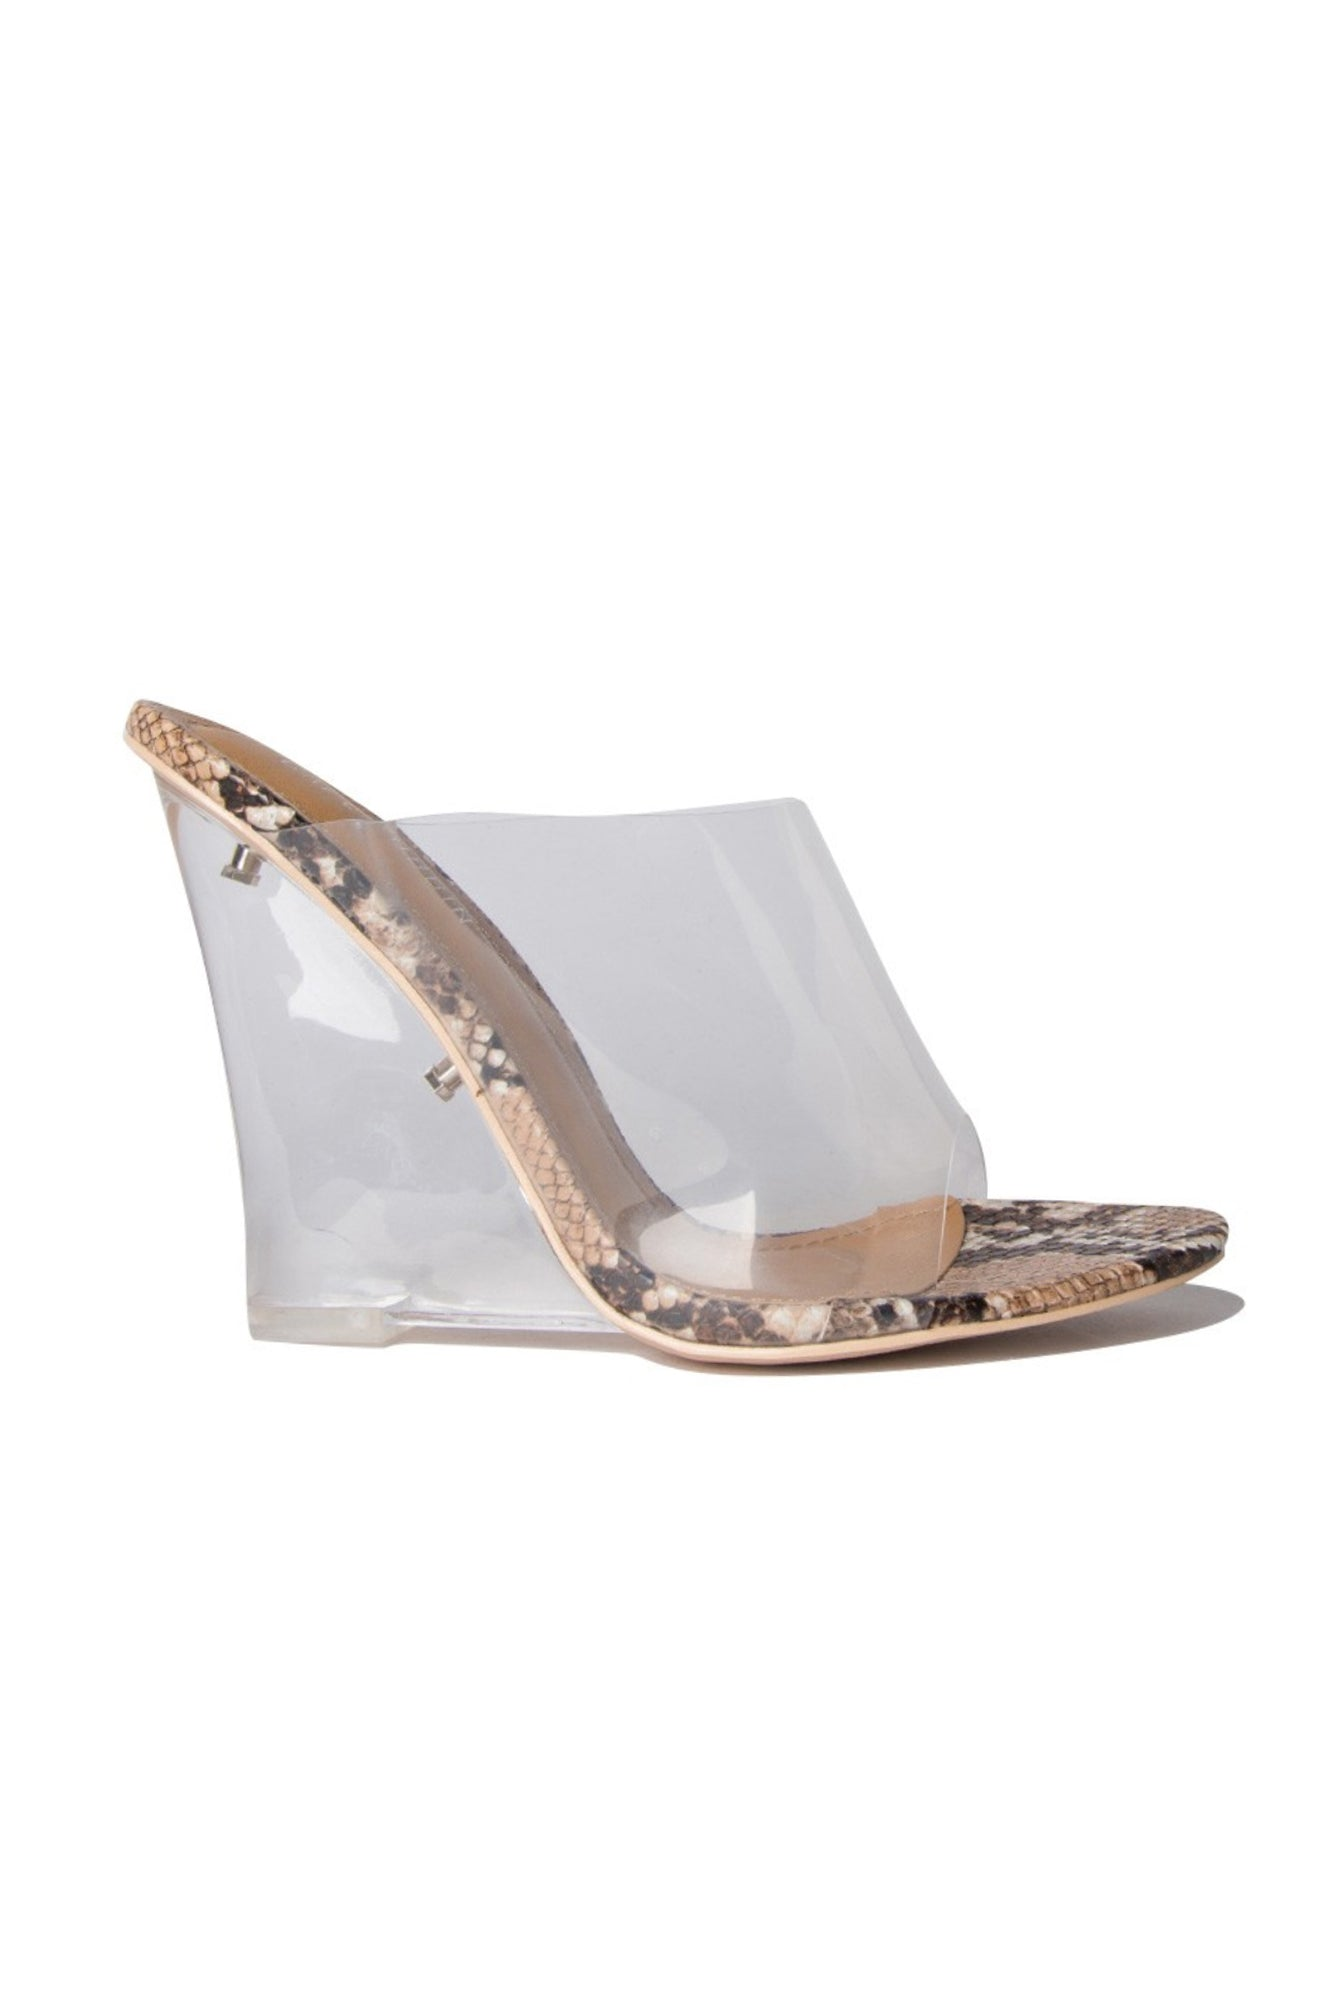 Clear Transparent Snake Mule Wedge Heel - Style Link Miami